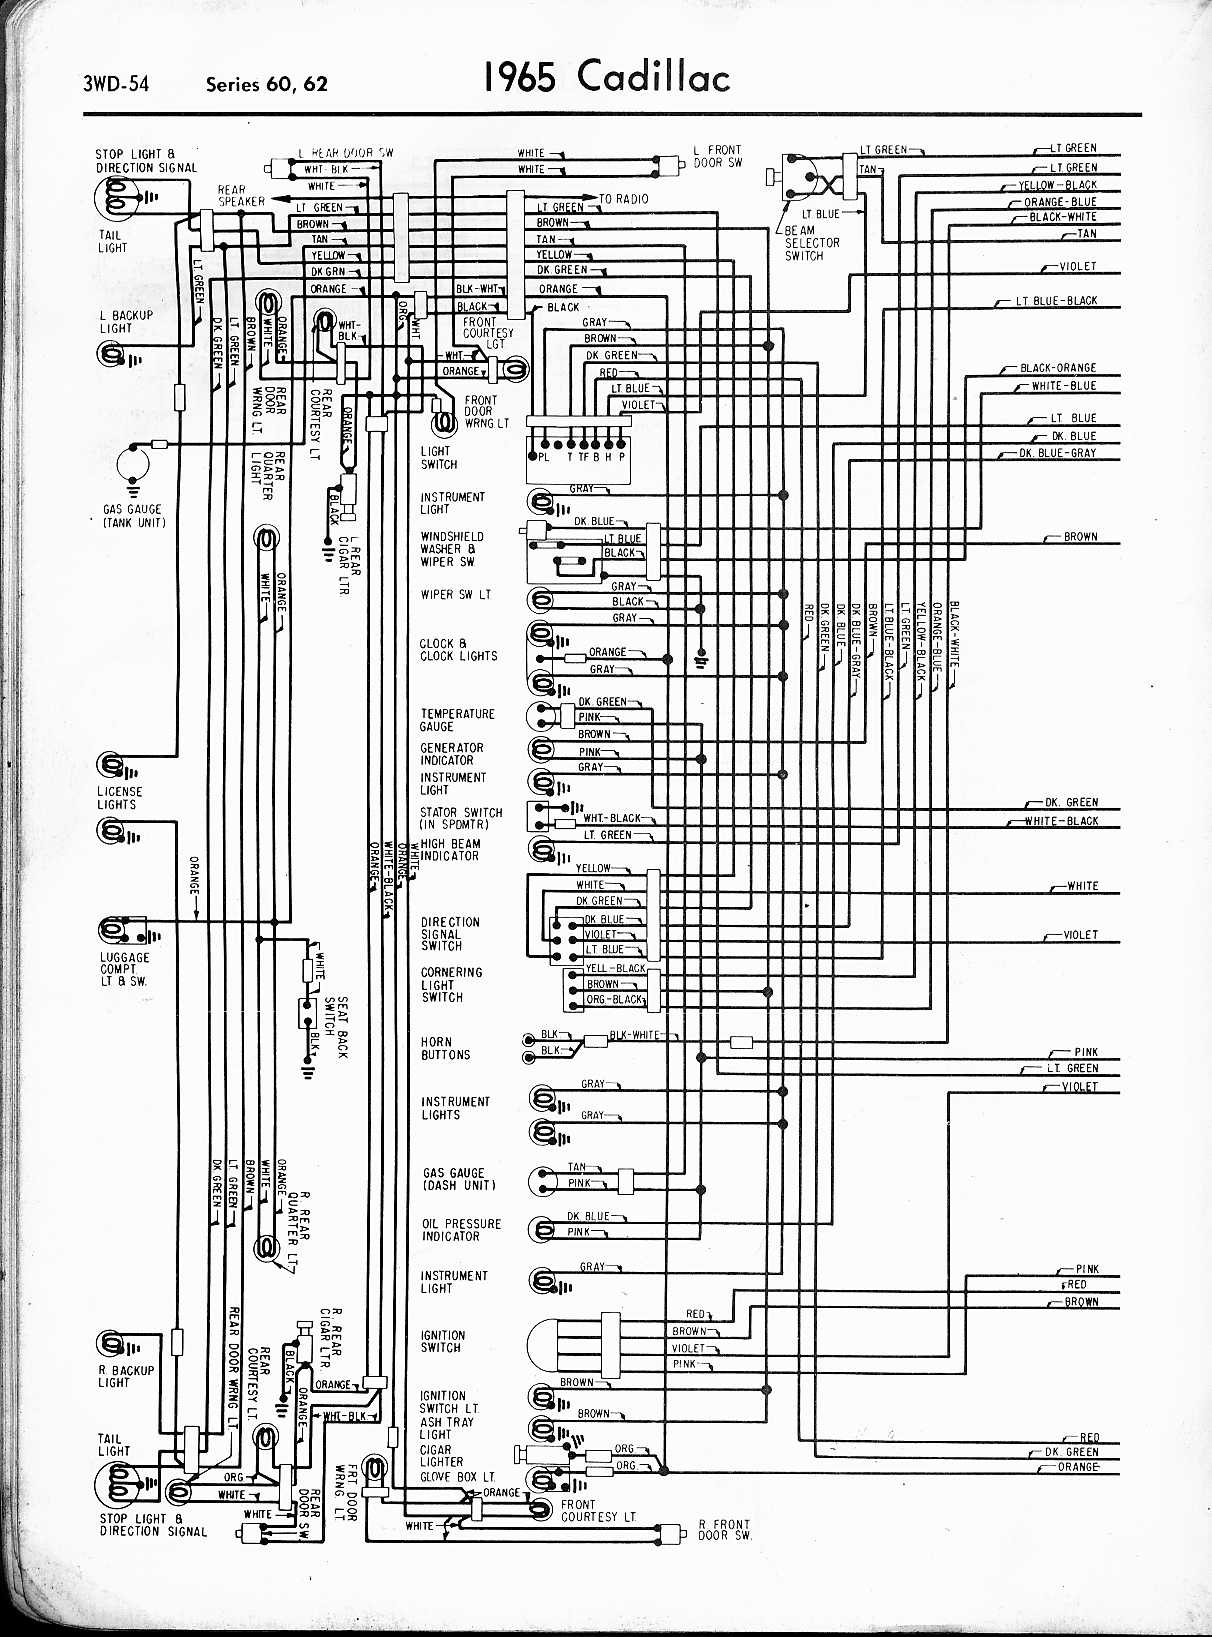 [ANLQ_8698]  Cadillac Wiring Diagrams: 1957-1965 | Cadillac Electrical Wiring Diagrams |  | The Old Car Manual Project